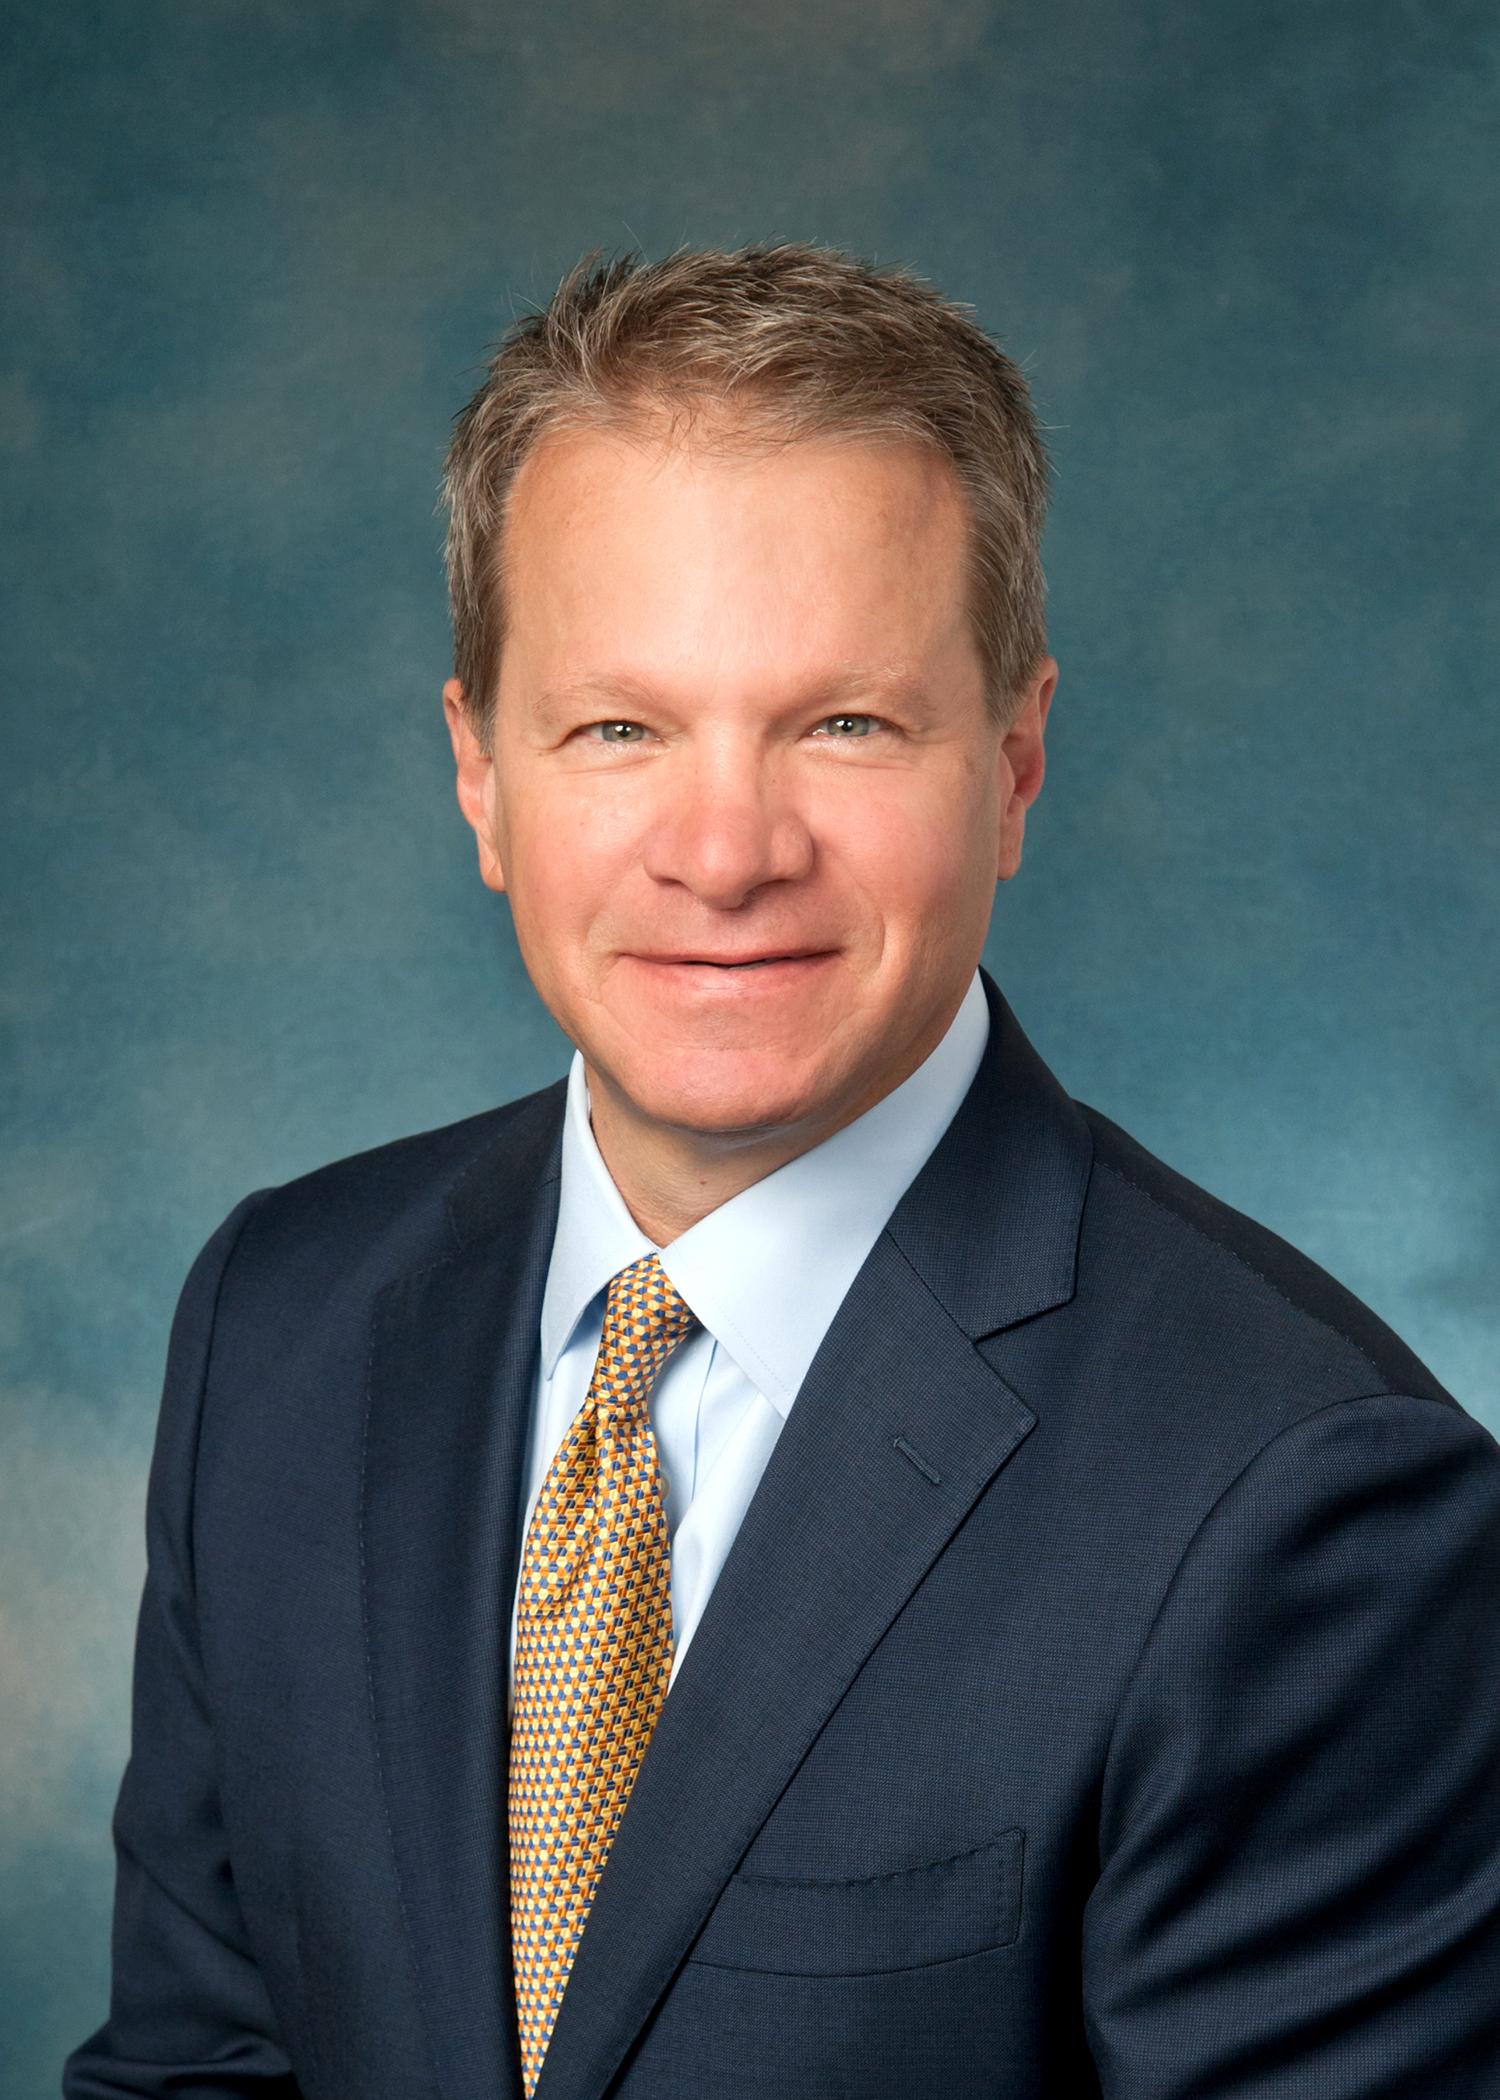 CDI Energy Products Announces Clinton Metcalf as President